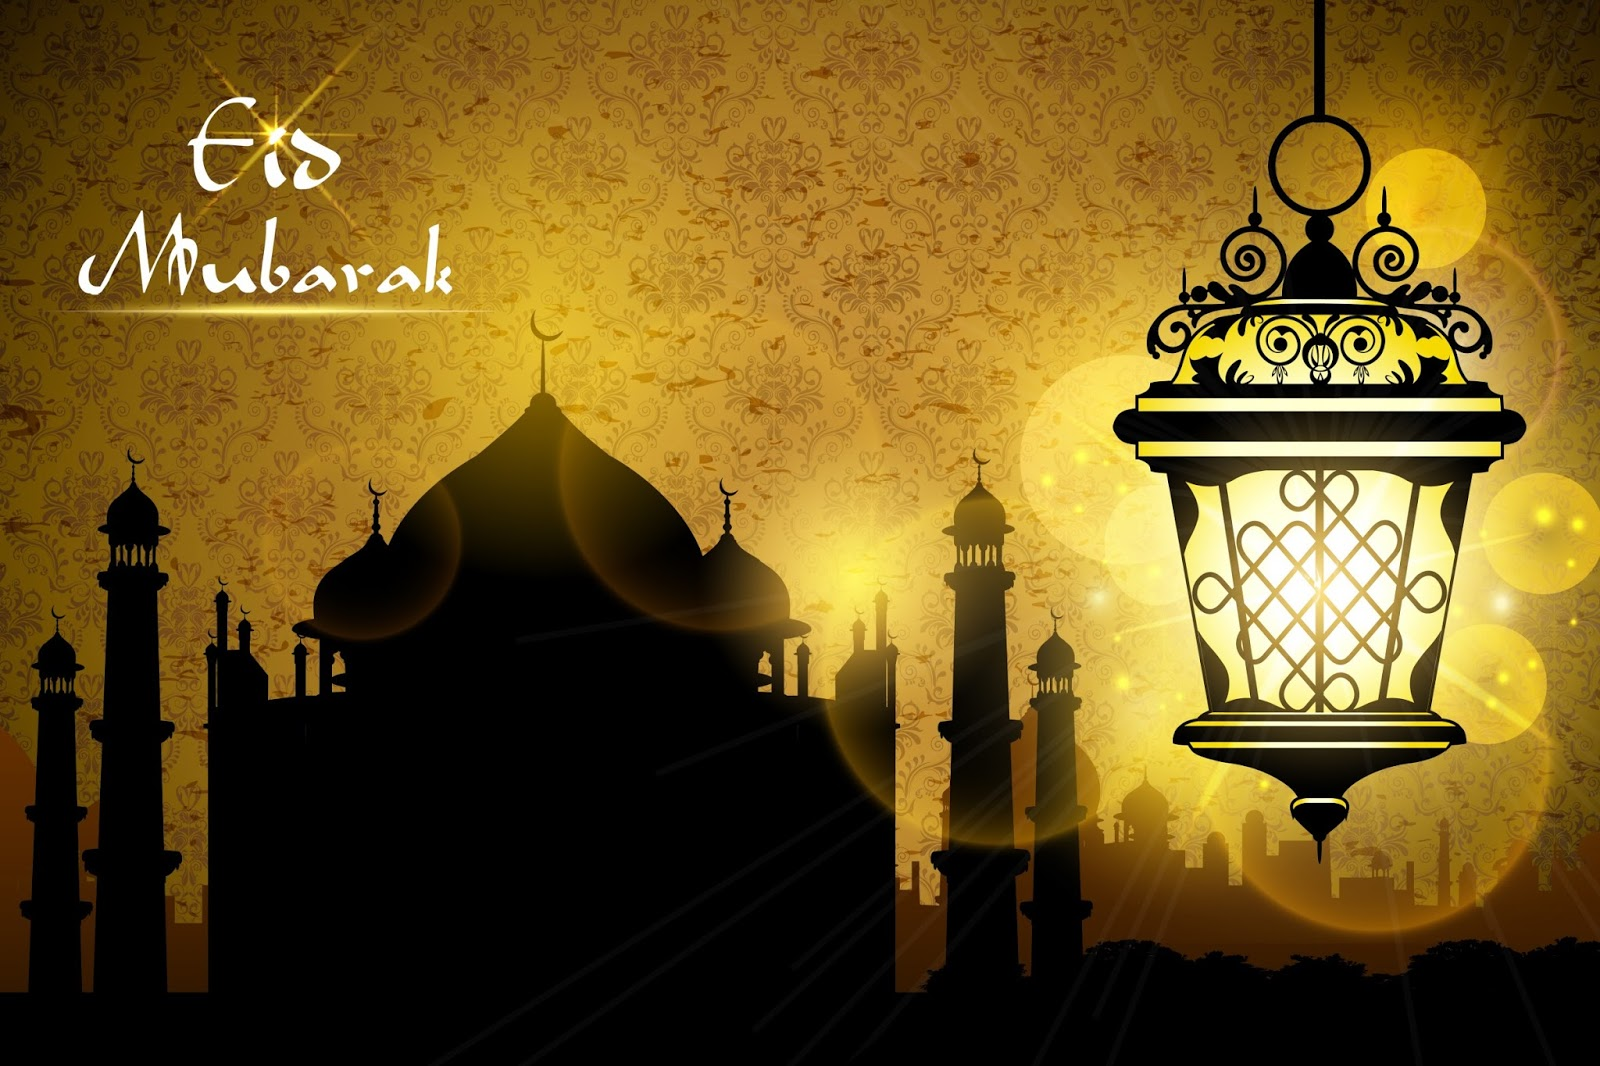 Eid ul fitr greeting messages in english happy eid day best eid al fitr 2017 messages kristyandbryce Images